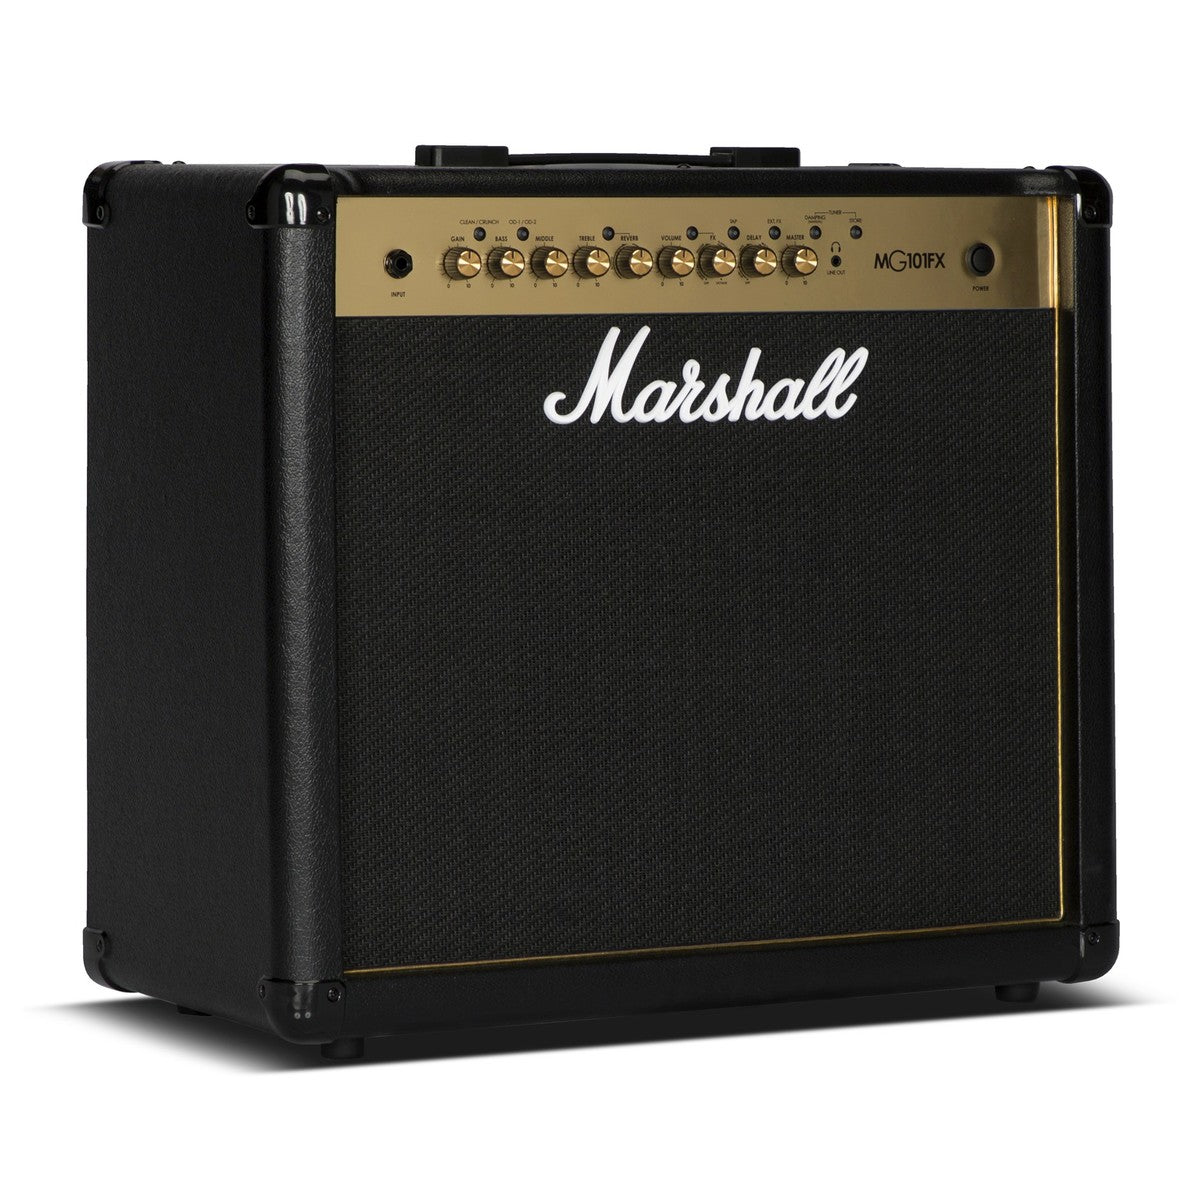 Marshall MG101GFX 100W 1x12'' Guitar Combo Amplifier with Effects | Reco Music Malaysia